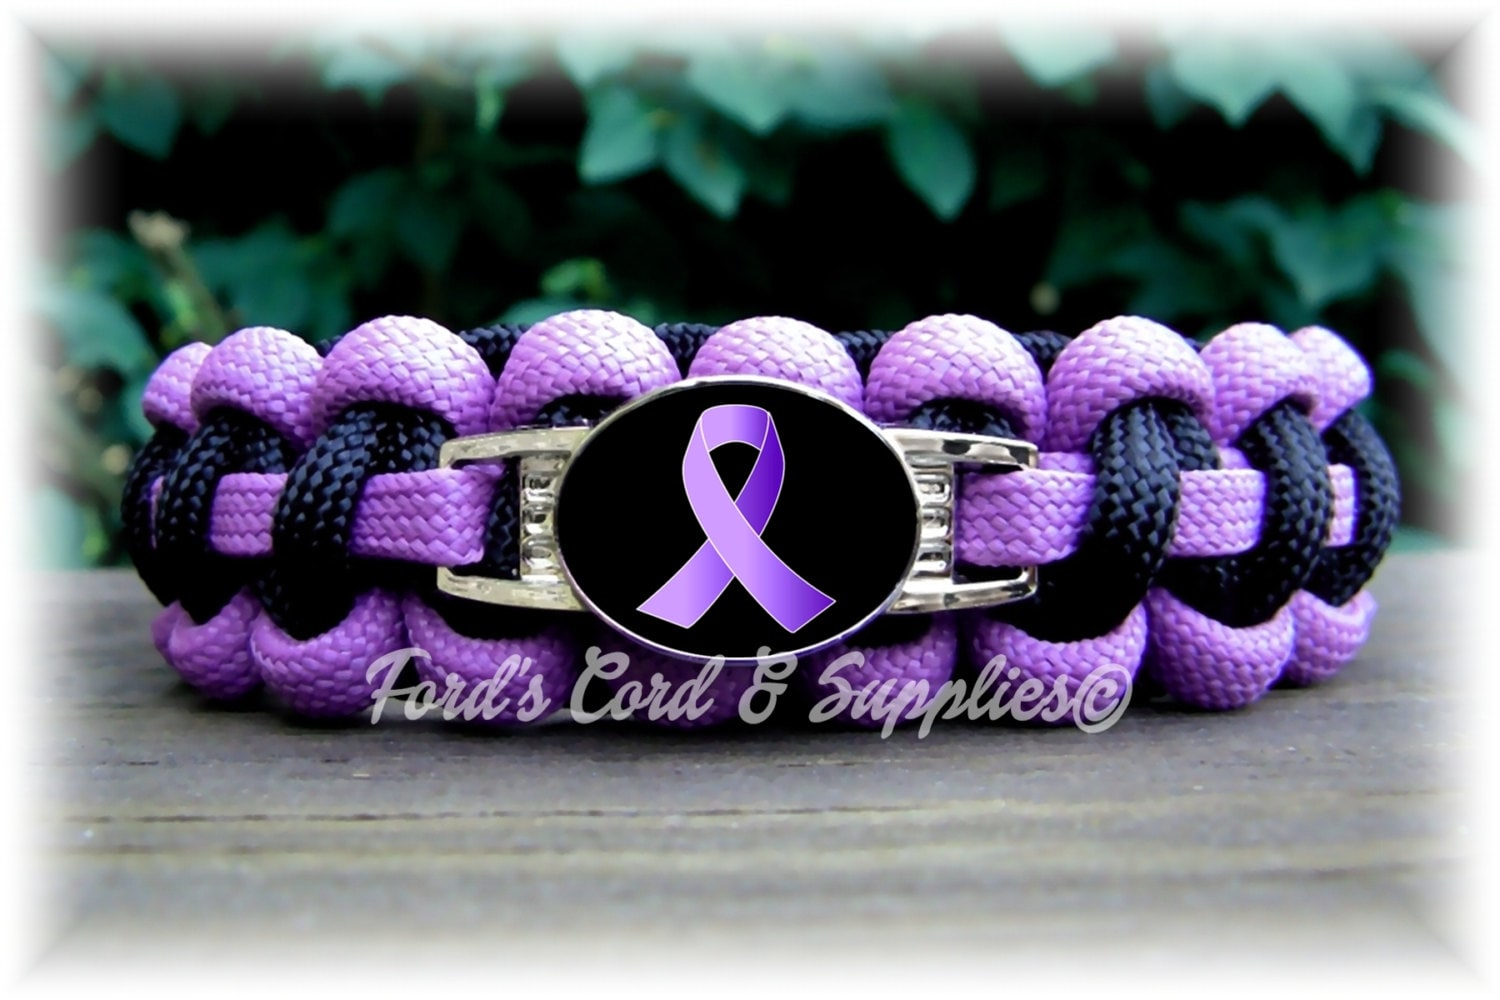 cancer testicular ilana c specific awareness elisa bracelet lymphoma mzcb